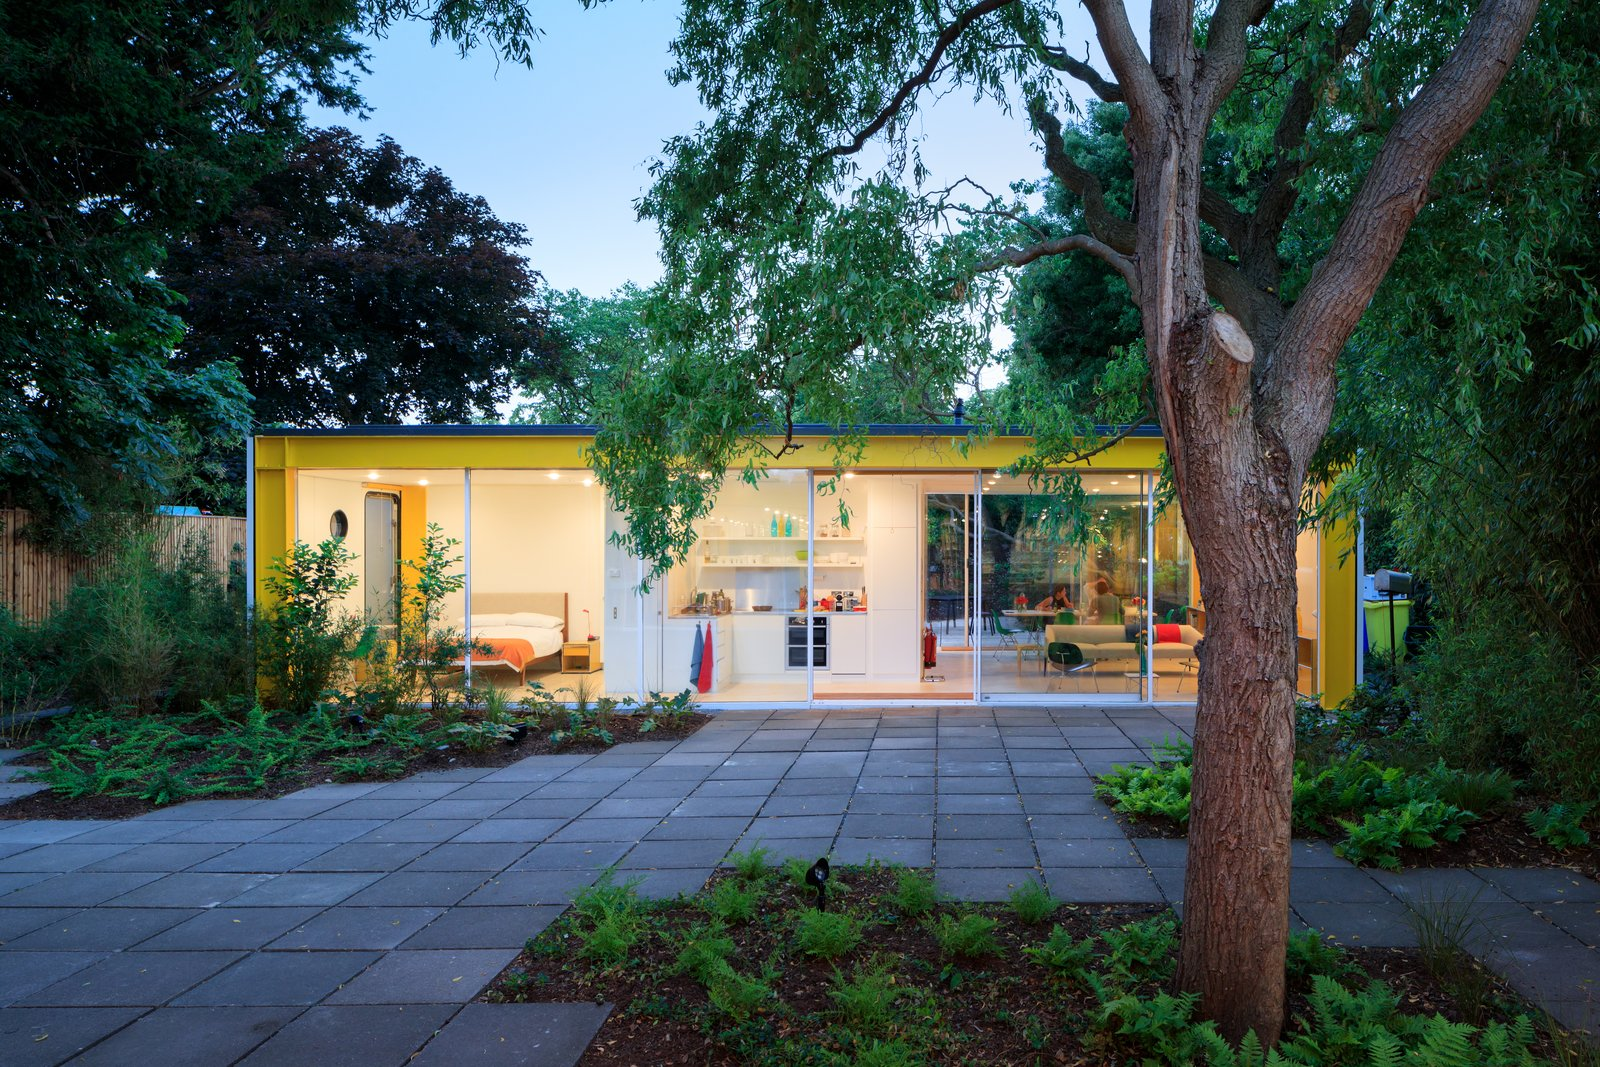 Exterior, House Building Type, Flat RoofLine, and Mid-Century Building Type  Photo 1 of 14 in Fully Renovated, Wimbledon House by Richard Rogers Hosts New Architecture Fellows in London